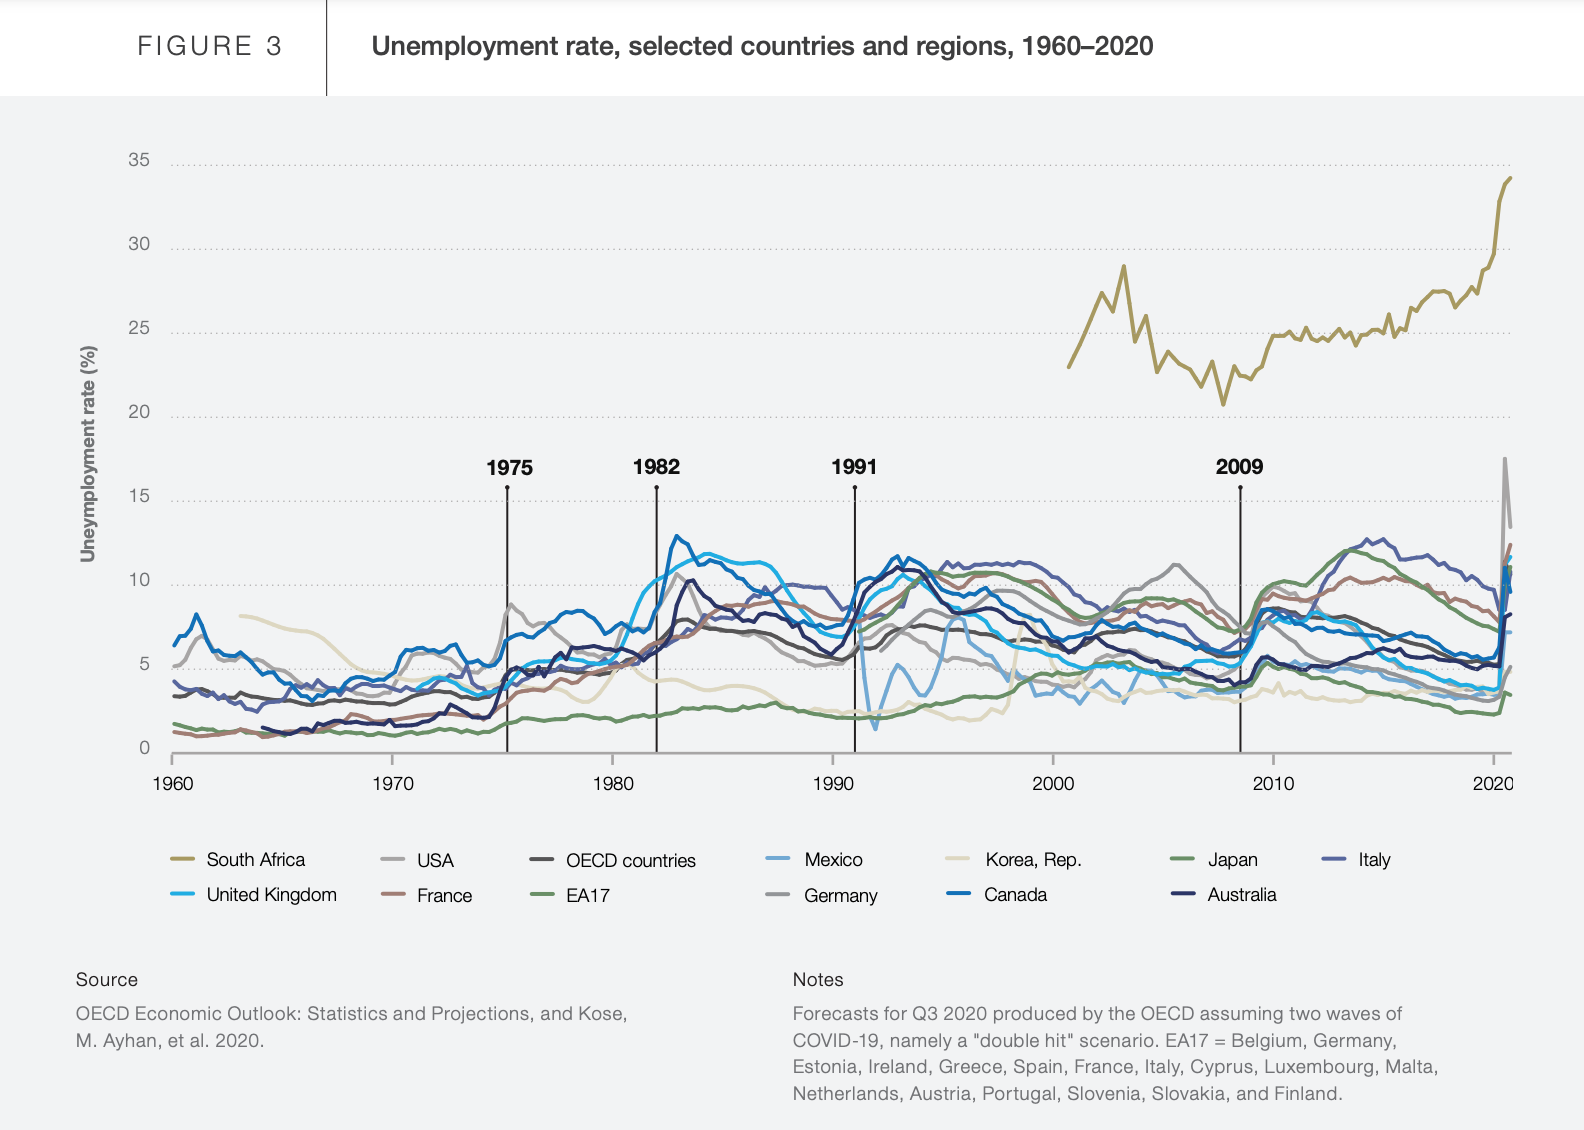 Unemployment rate, selected countries and regions, 1960-2020